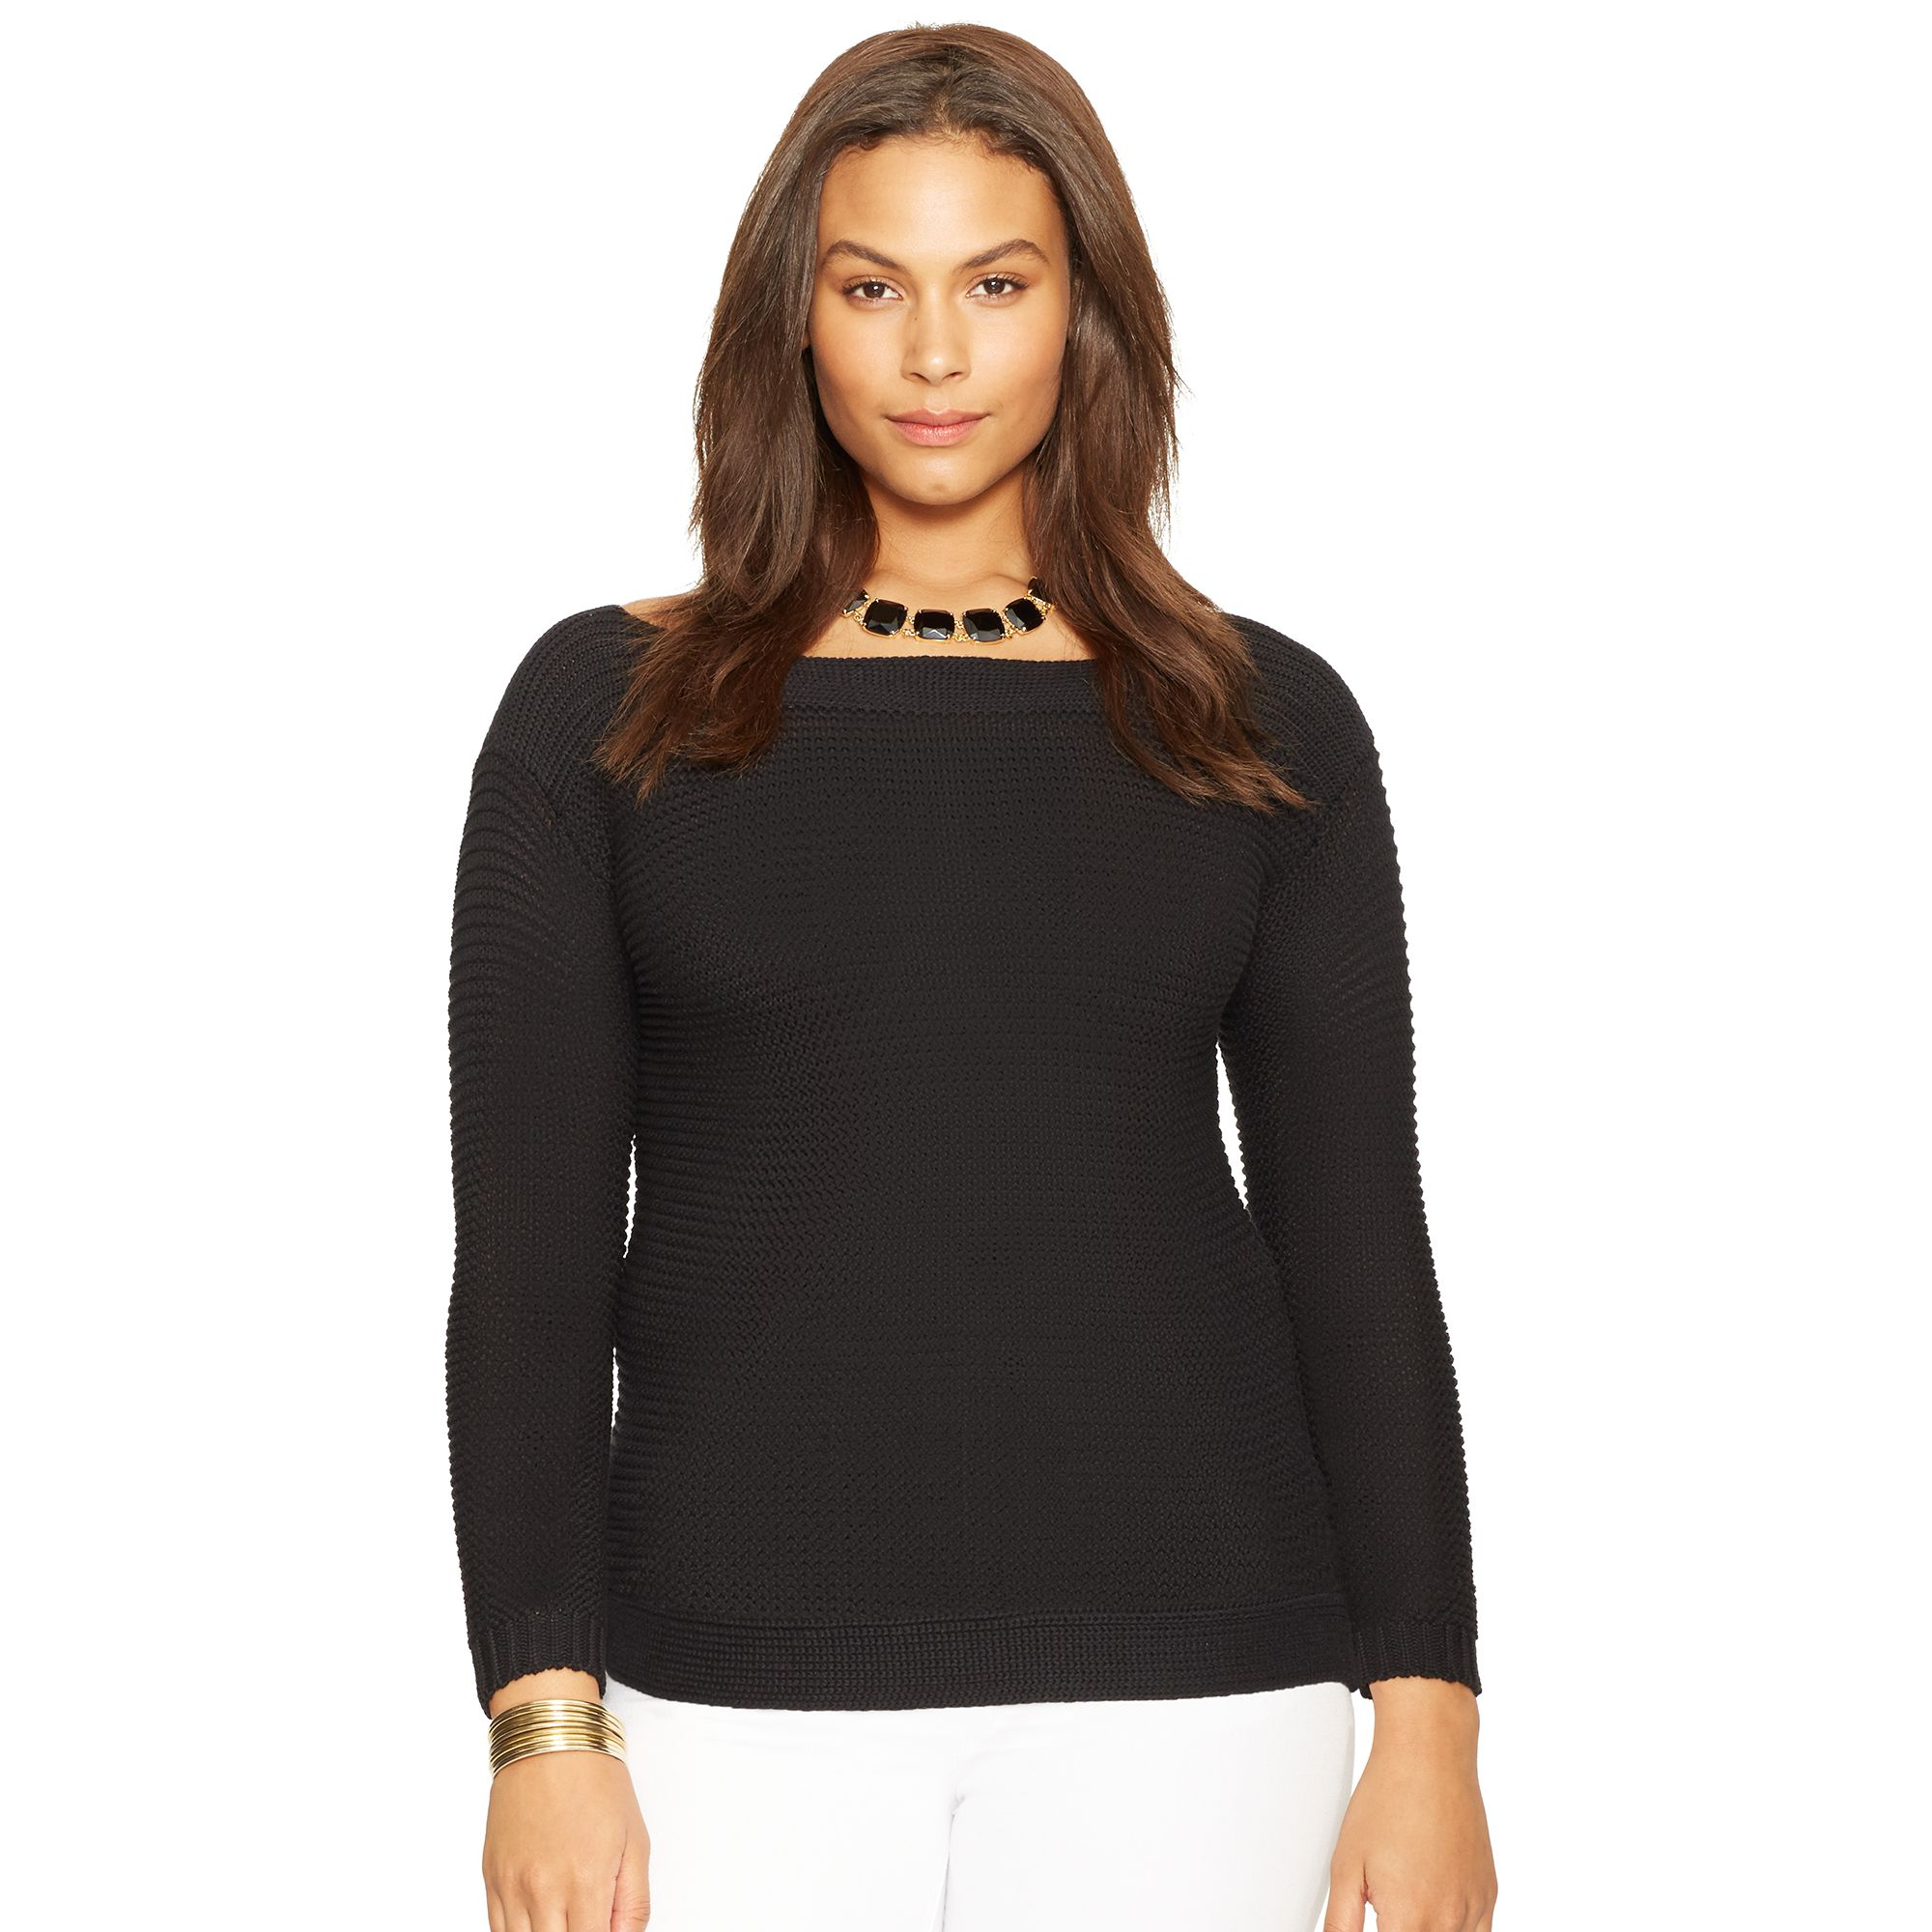 Ralph lauren Cotton Boatneck Sweater in Black | Lyst